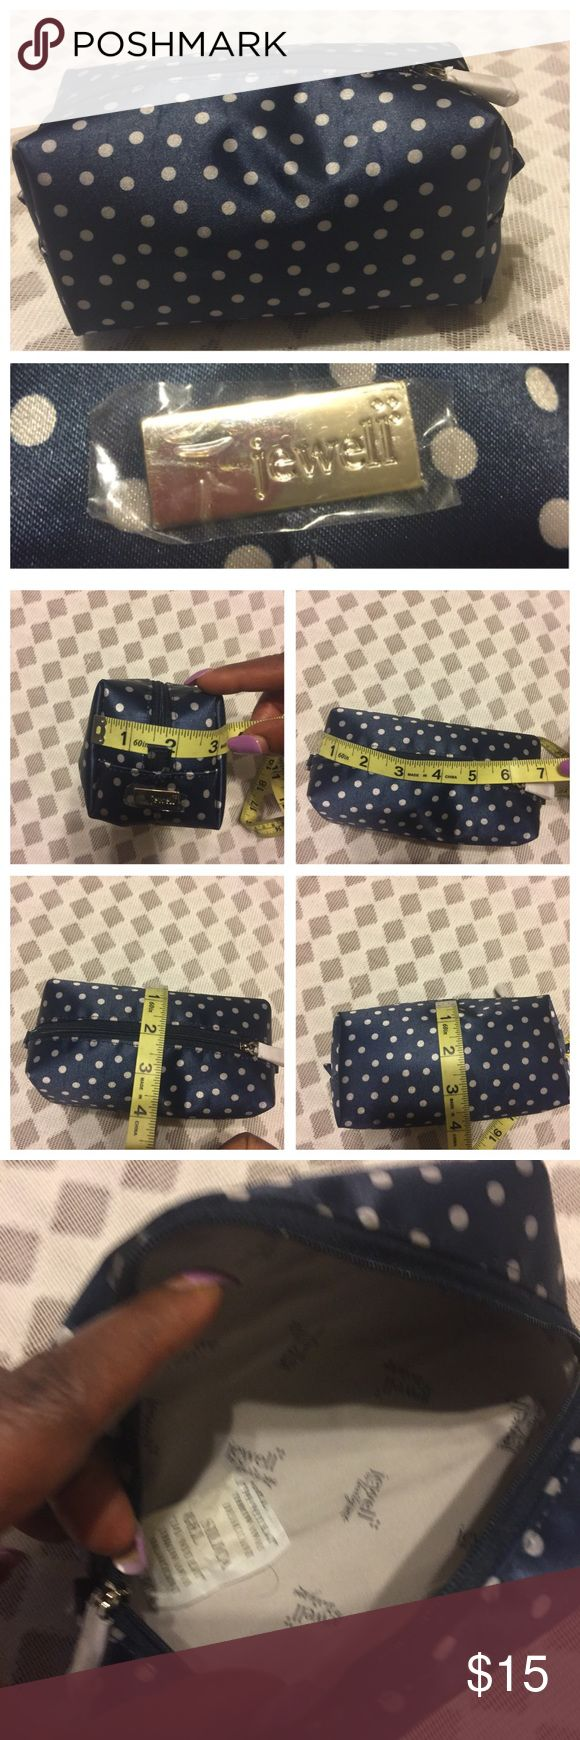 ***Jewell By Thirty-One***Cosmetic/Toiletry Bag. ***Jewell By Thirty-One***Cosmetic/Toiletry Bag. Navy and Tan color. See photos attached for measurements. New, Preowned but never been used. No tag, no hold, no trade, and no modeling. Jewell by Thirty One Bags Cosmetic Bags & Cases